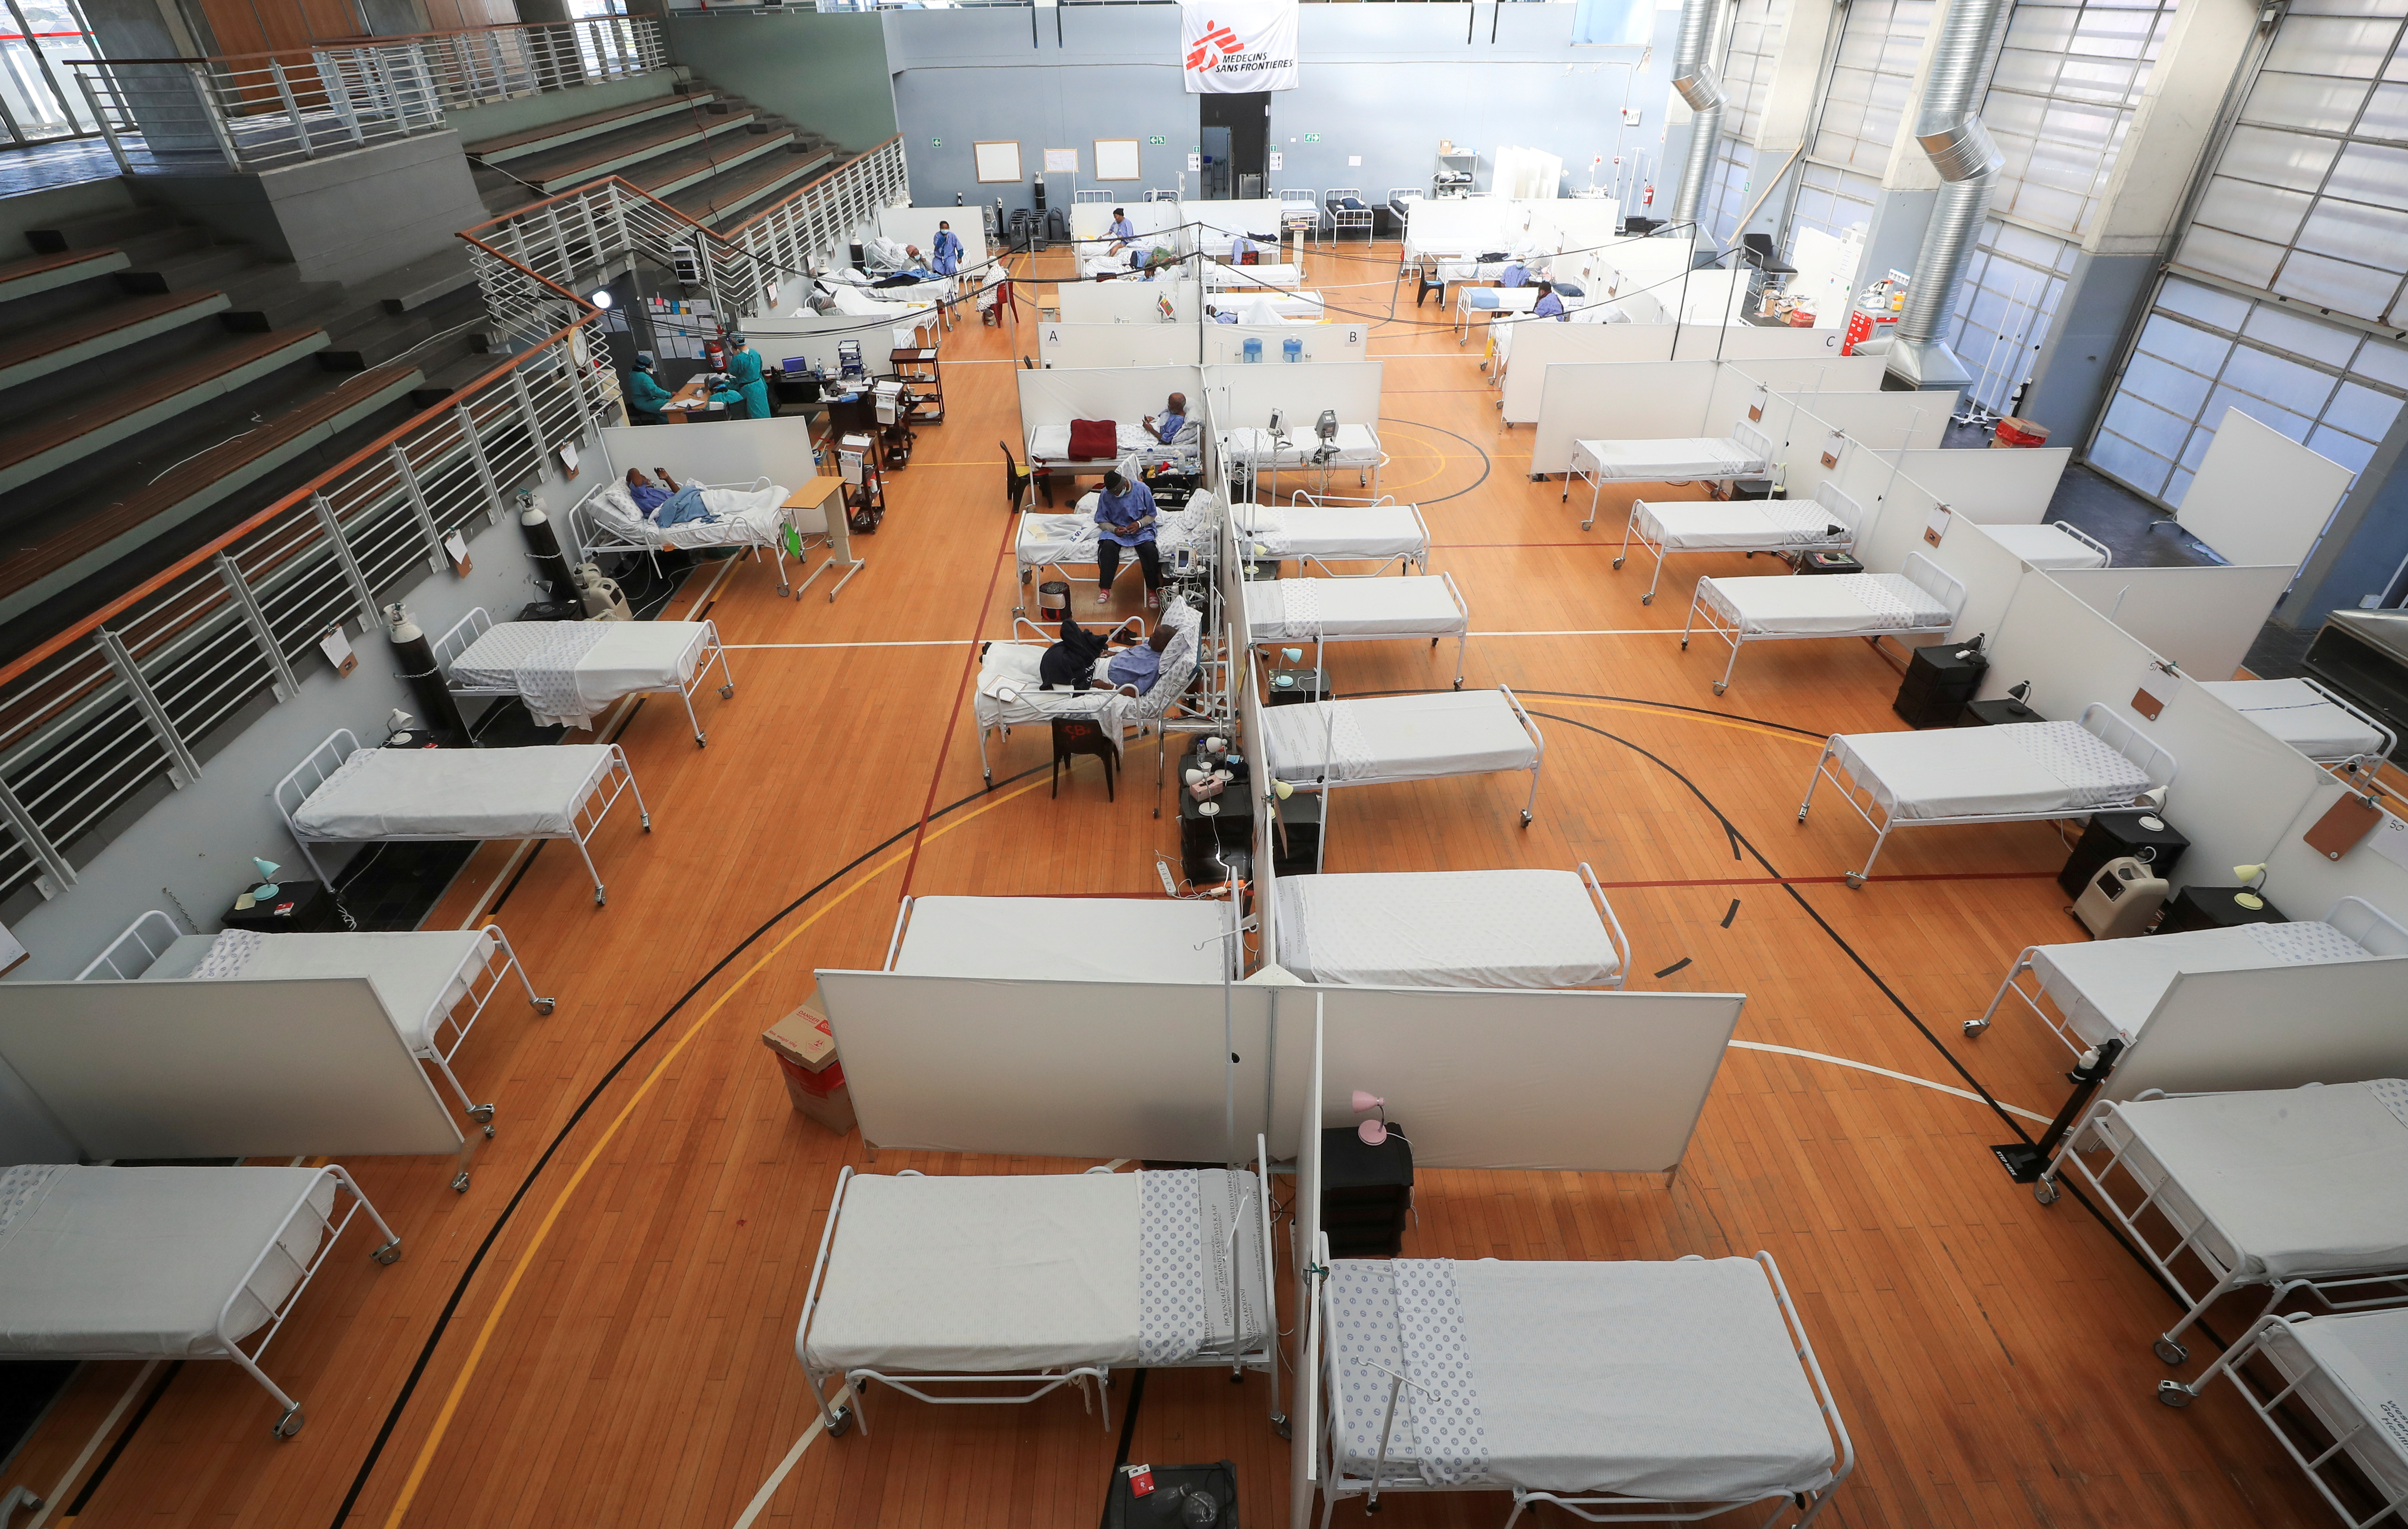 Beds are seen at a temporary field hospital set up in a sports complex by Medecins Sans Frontieres (MSF) during the coronavirus disease (COVID-19) outbreak in Khayelitsha township near Cape Town, South Africa, July 21, 2020